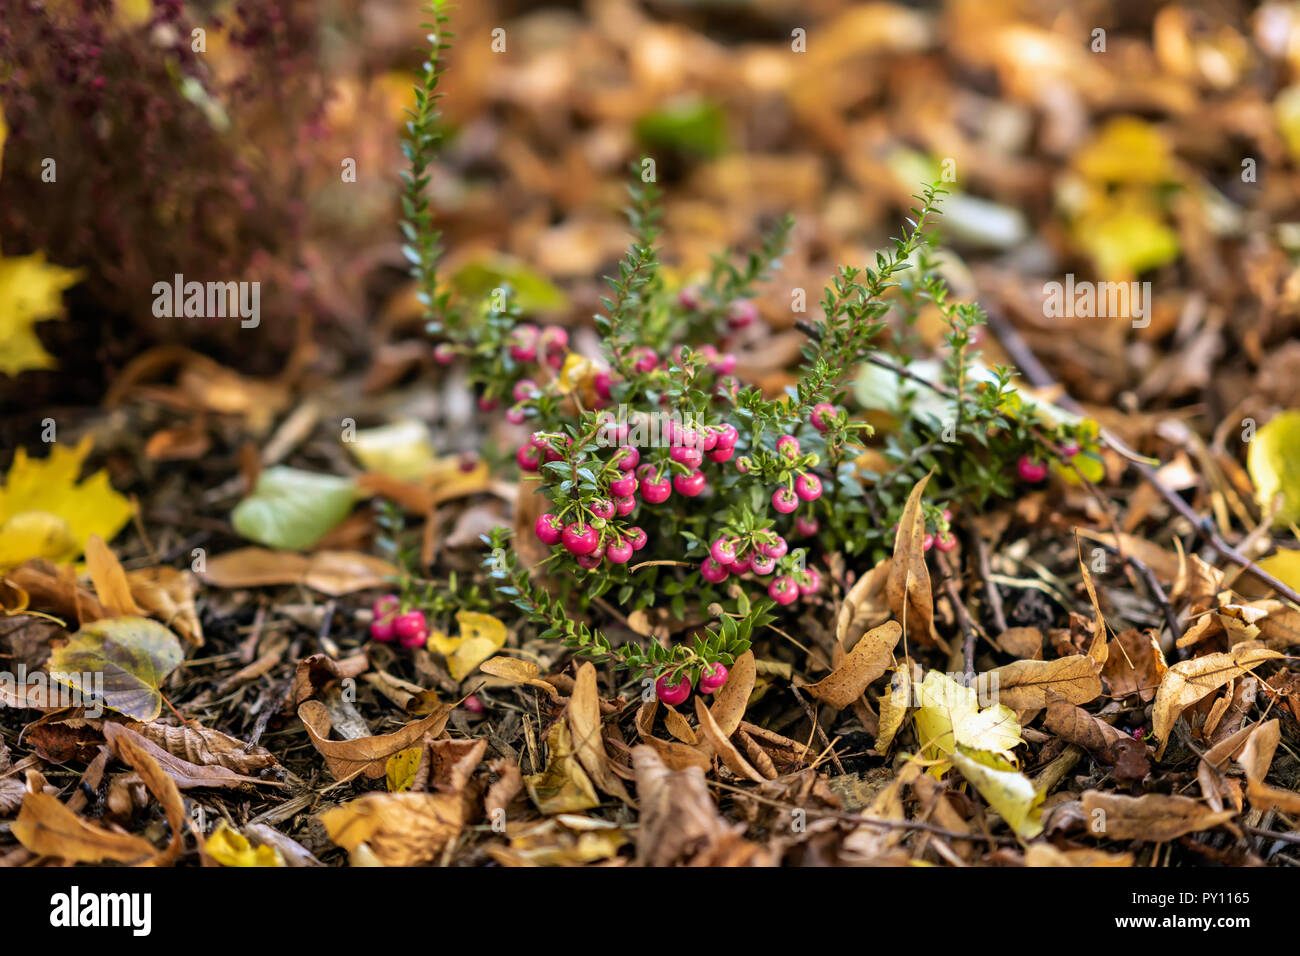 Bright short evergreen shrub of cowberry, Vaccinium among the fallen autumn maple foliage. Evergreen plant. Natural picturesque autumn background - Stock Image